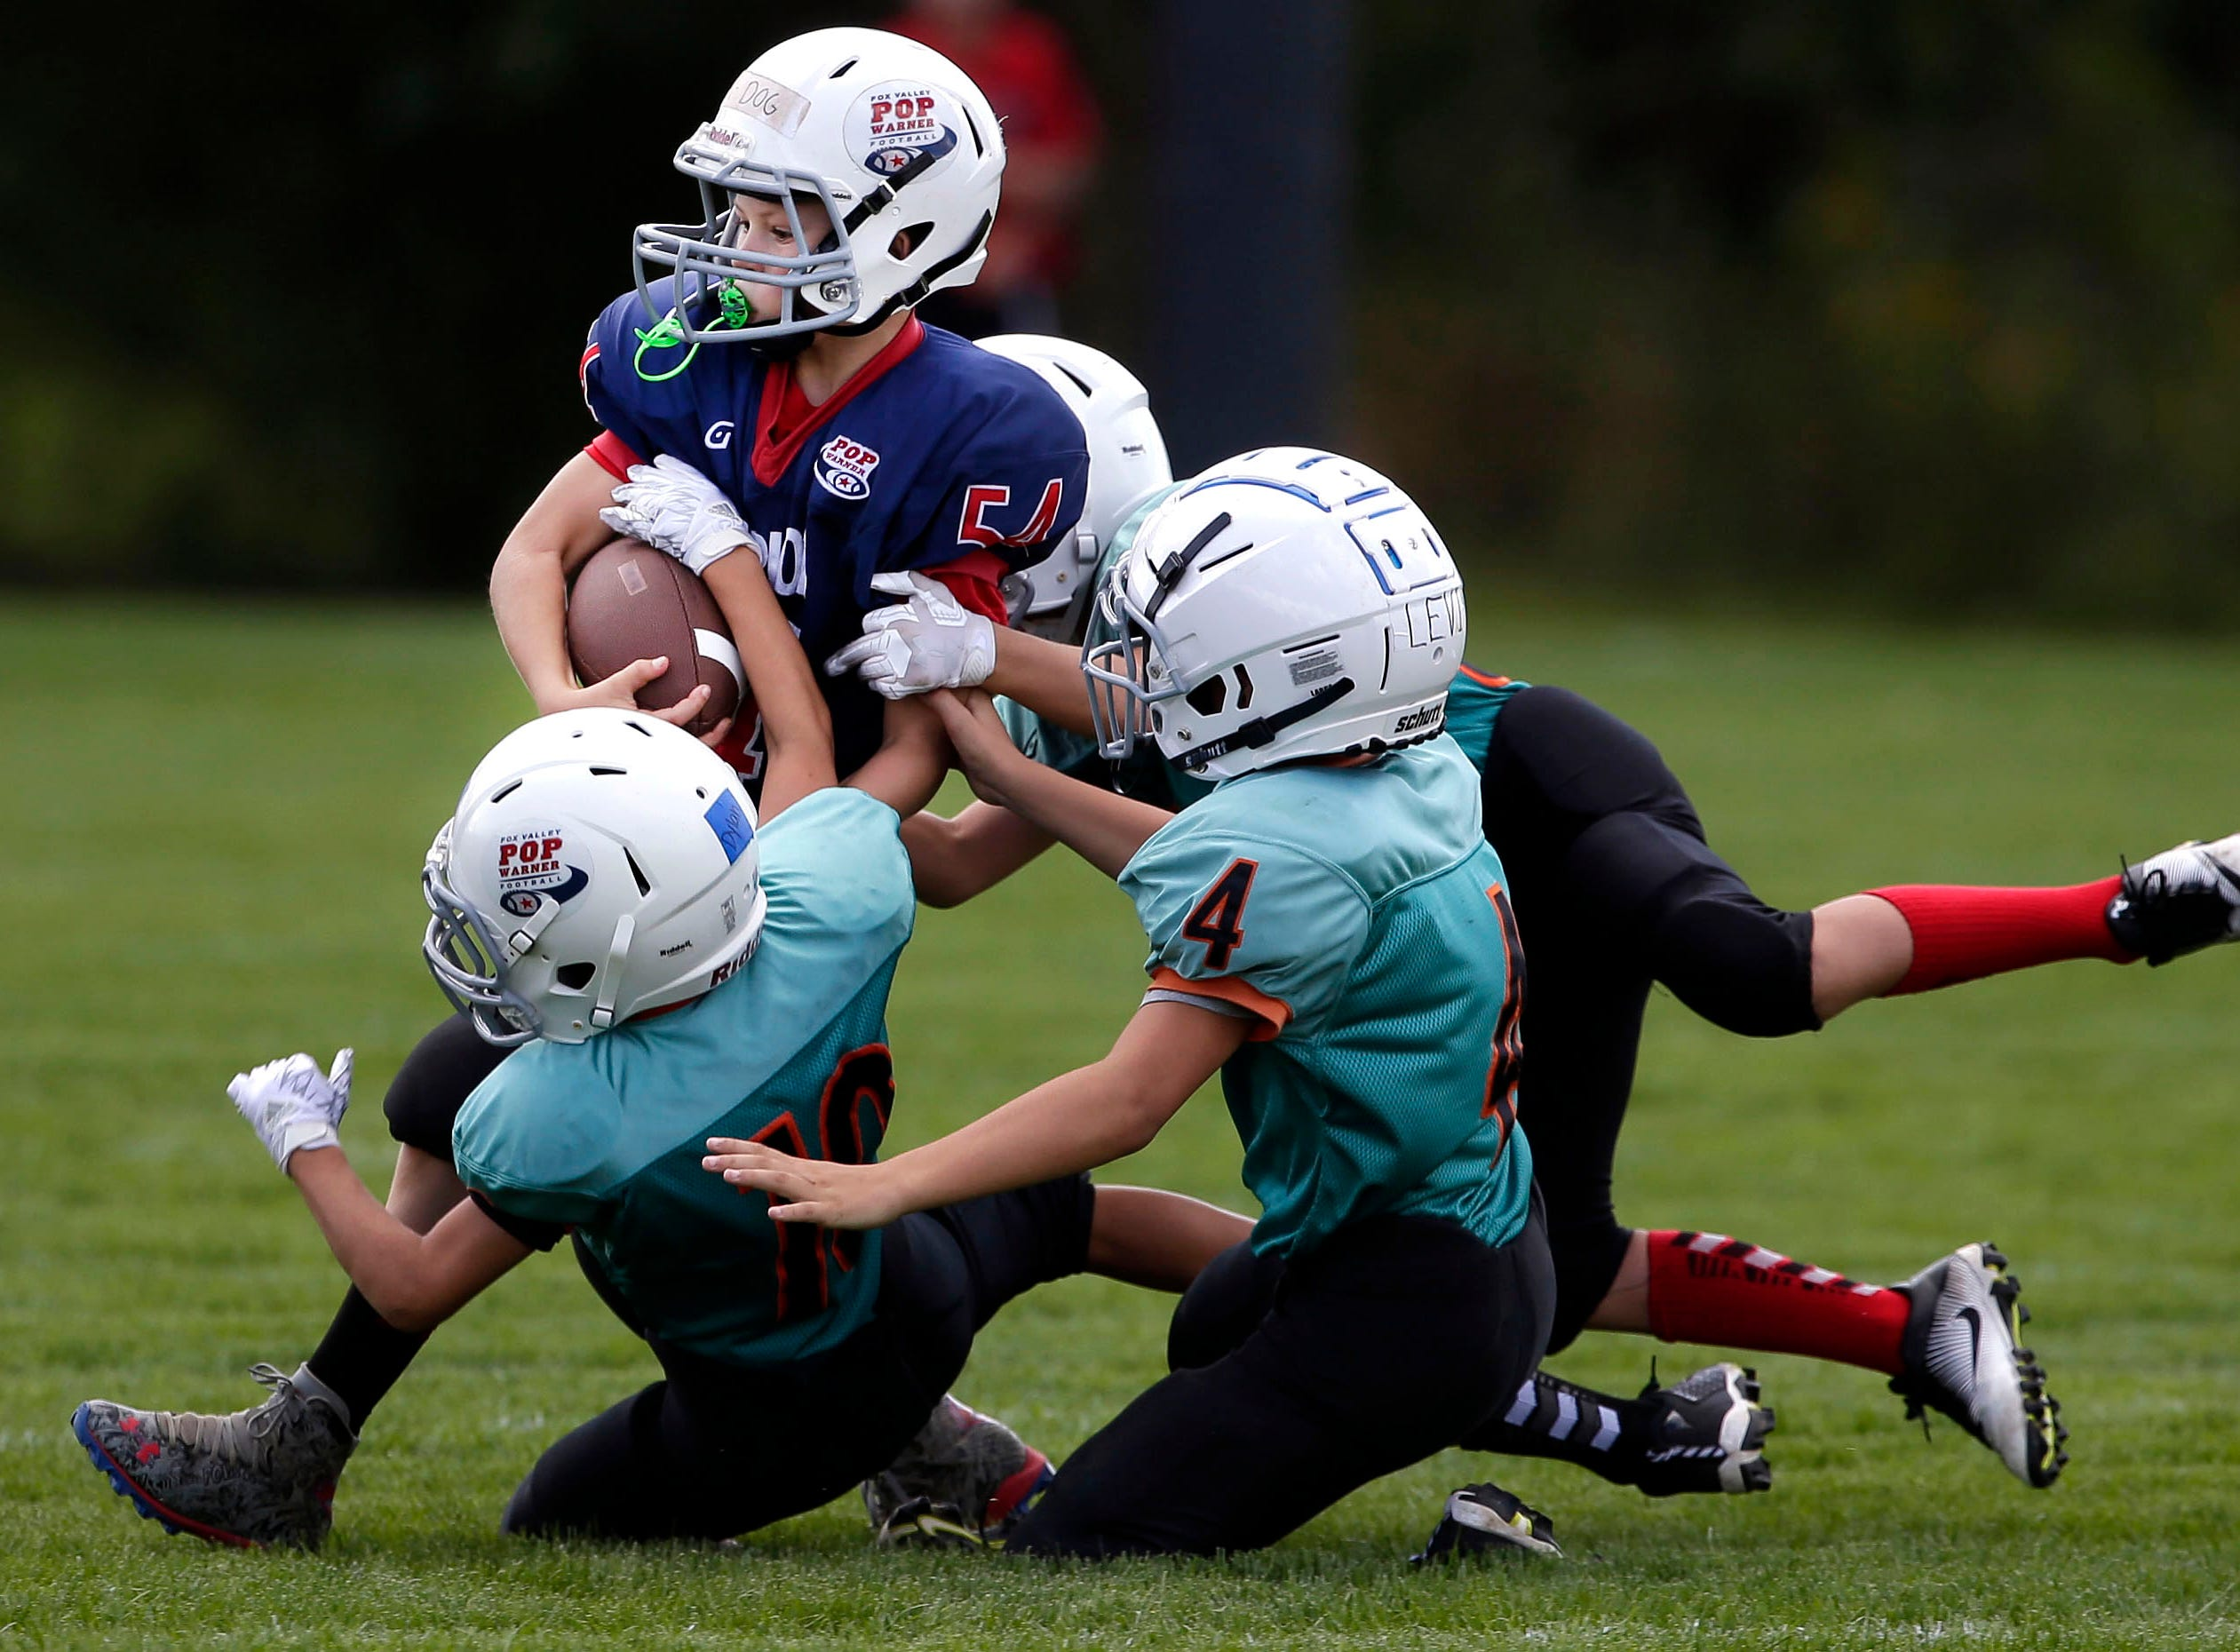 Kolten Jens of the Patriots is surrounded by the Rockets defense as Fox Valley Pop Warner Football opens the season Saturday, September 8, 2018, at Plamann Park in Grand Chute, Wis.